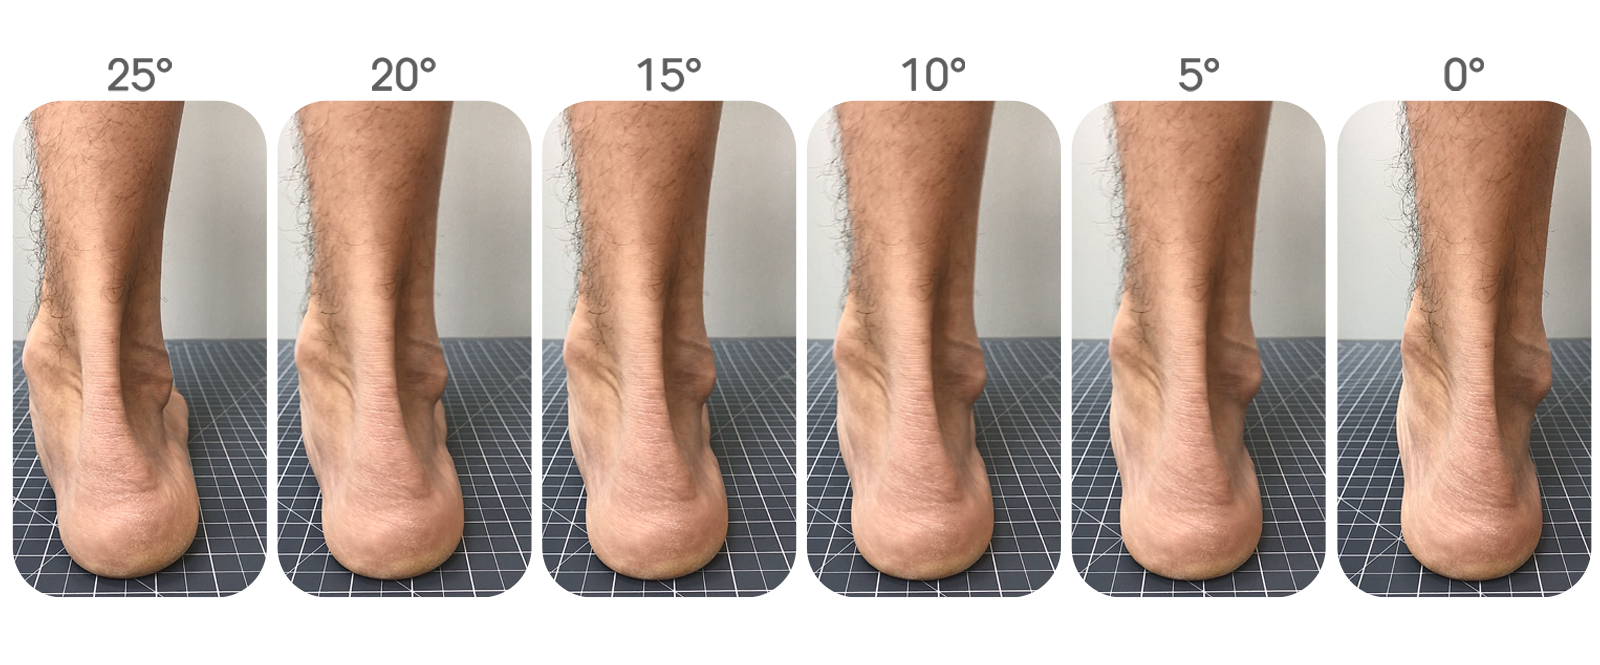 http://dubaipodiatry.com/wp-content/uploads/2019/01/5-degrees.png